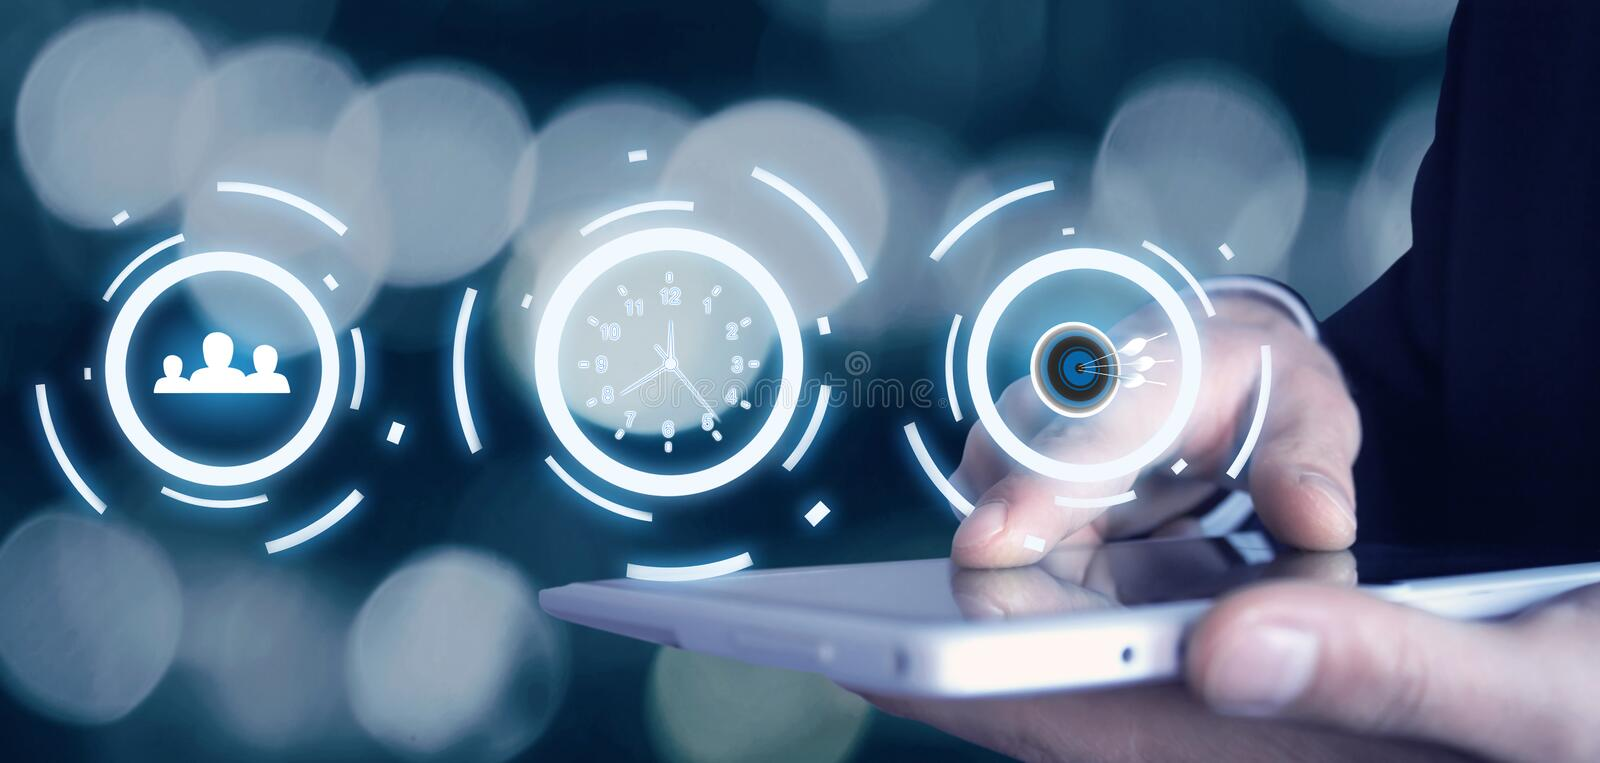 Social media, time management and target achievement. Business c stock photos